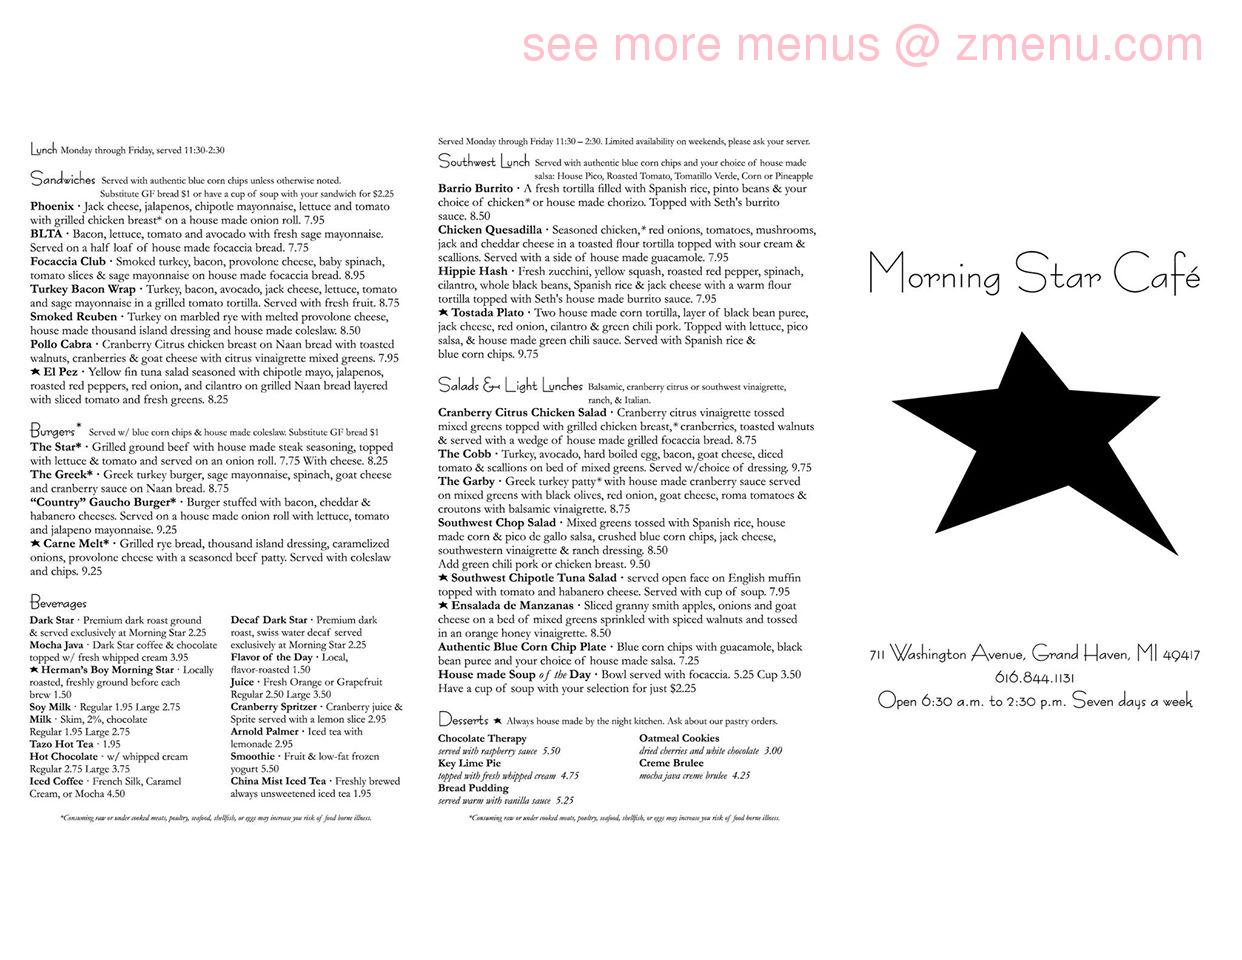 Morning Star Cafe Grand Haven Mi Menu